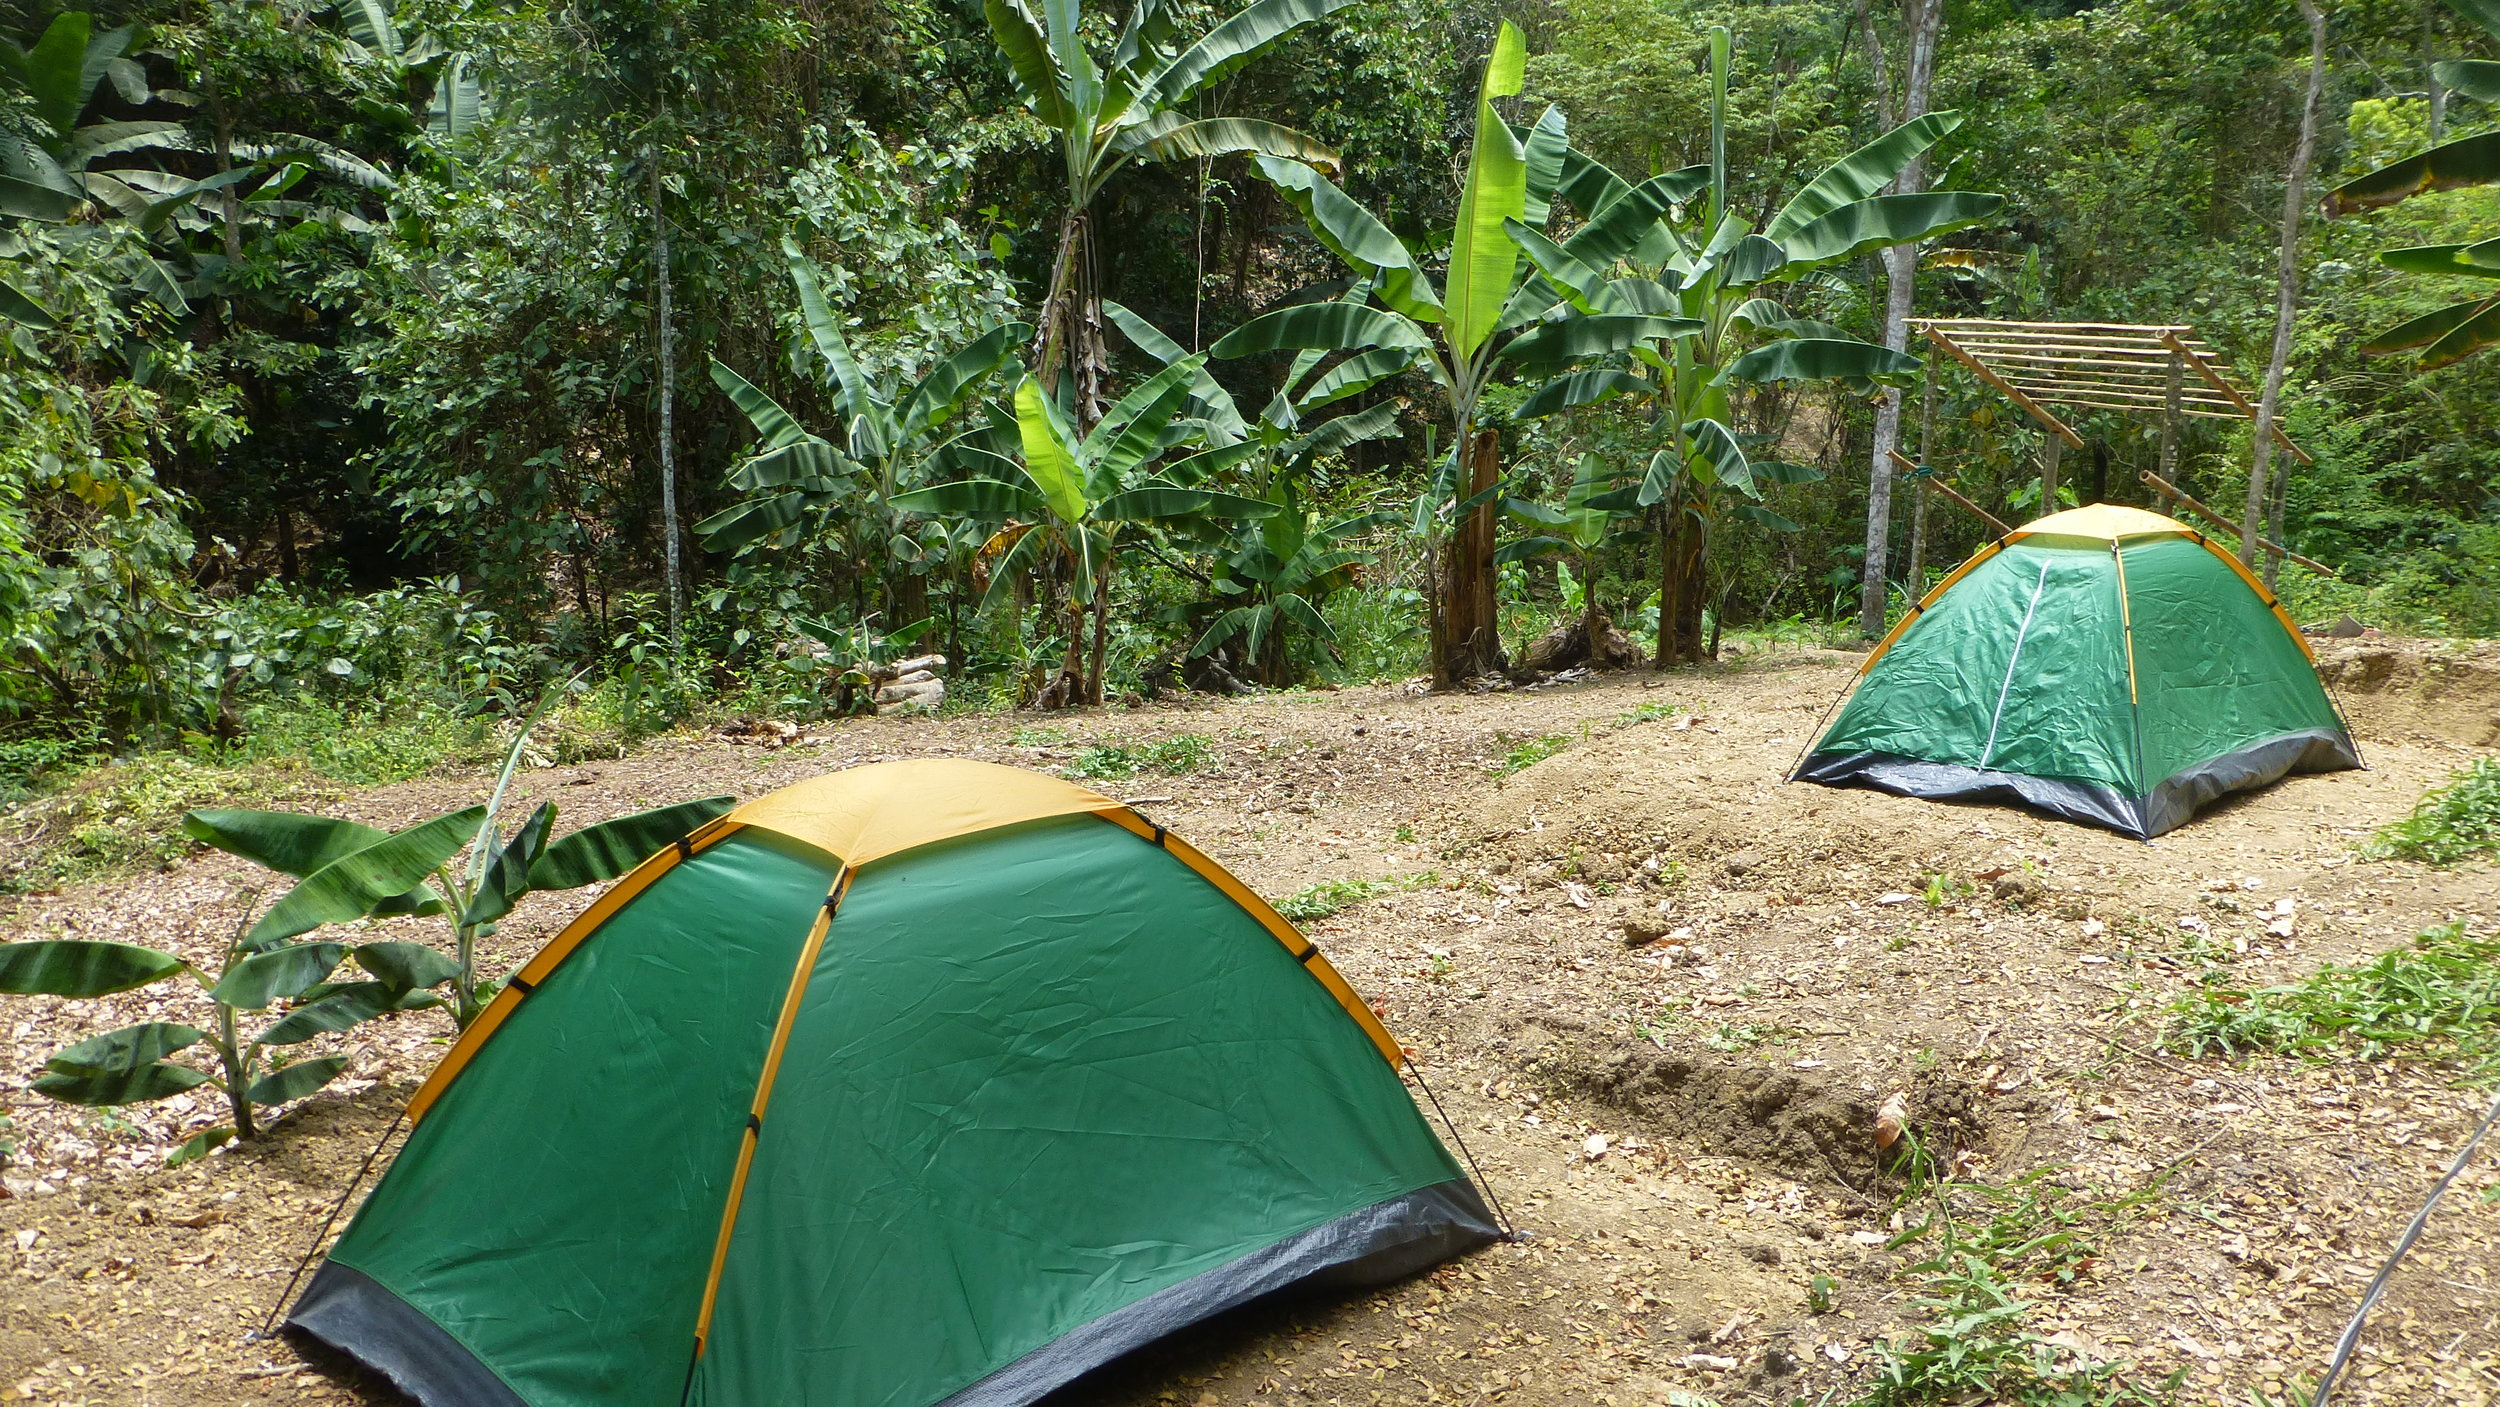 Camping area in the woods.